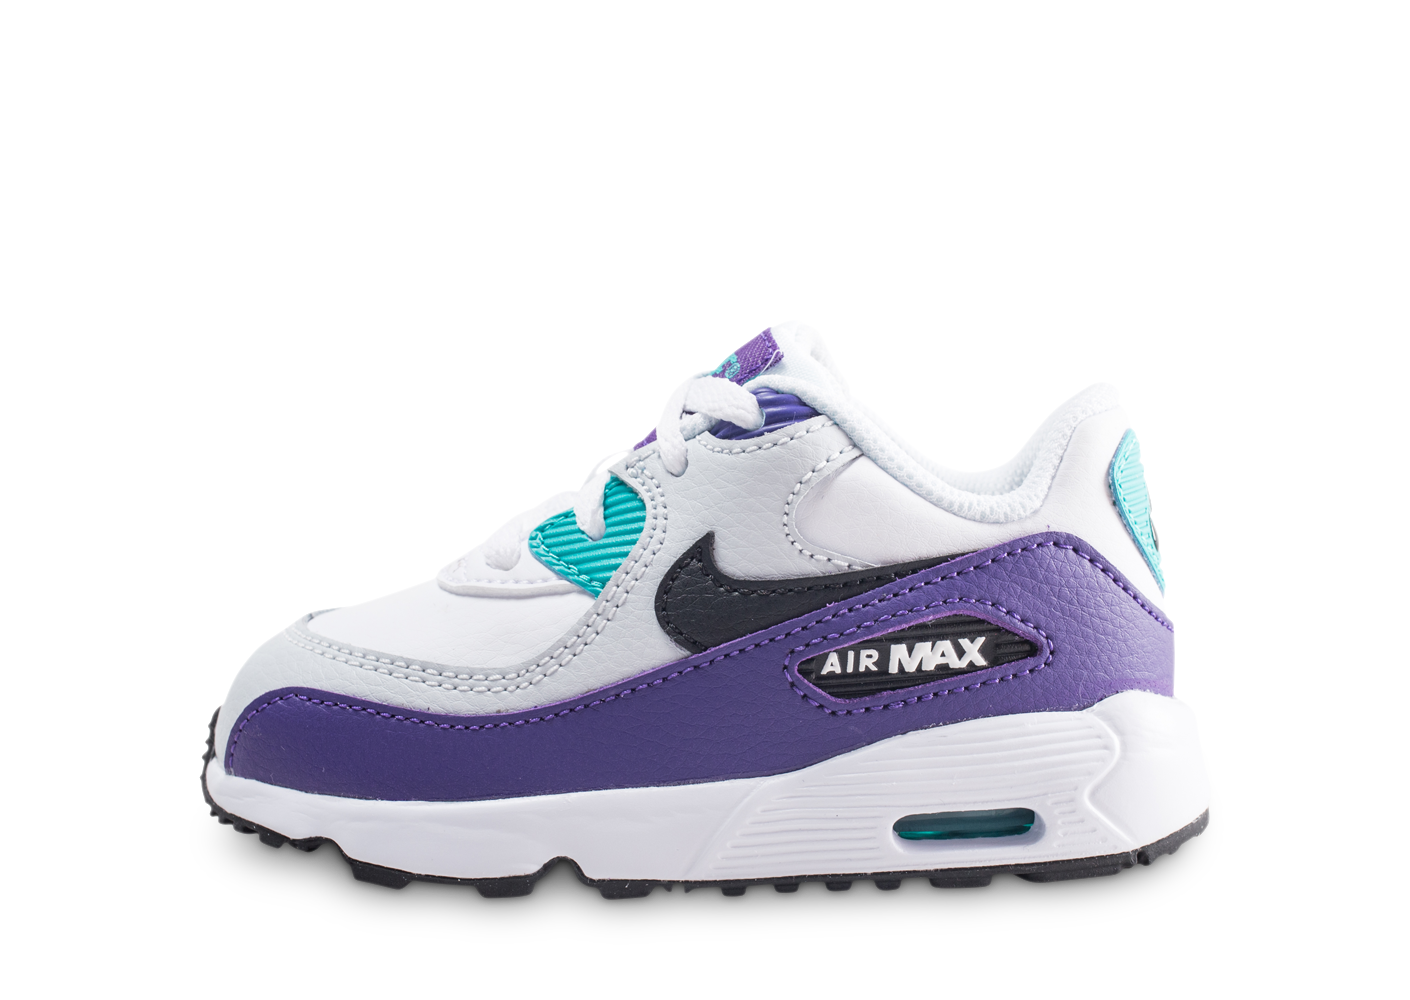 Nike air max 90 leather blanc et violet bébé...